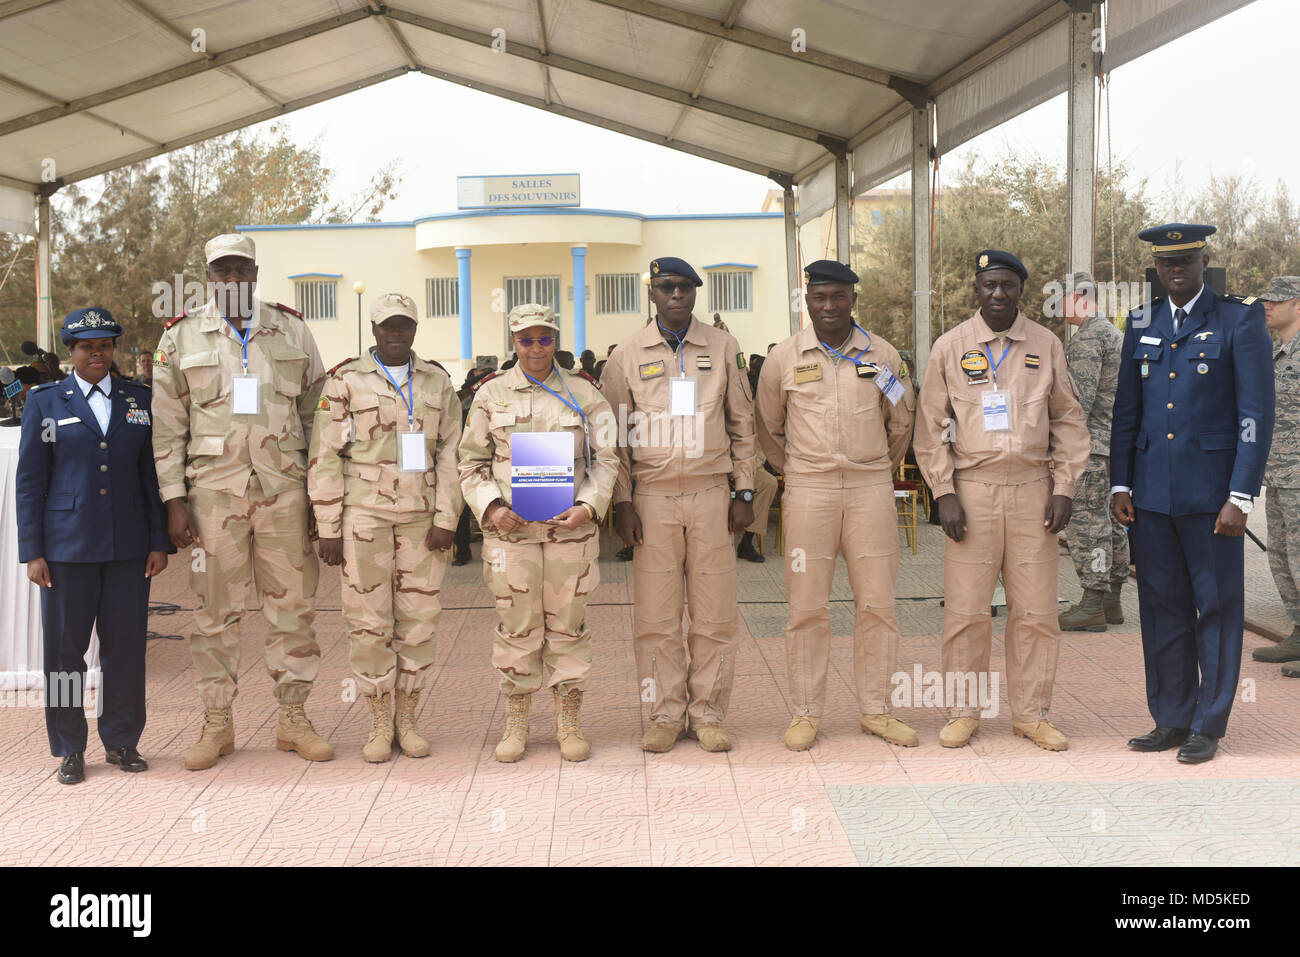 African Partnership Flight participants from Mali pose for a photo after the closing ceremony for APF at Captain Andalla Cissé Air Base, Senegal, March 23, 2018. Ten nations participated in the week-long event, which focused on aeromedical evacuation, casualty evacuation and air and ground safety. (U.S. Air Force photo by Airman 1st Class Eli Chevalier) - Stock Image